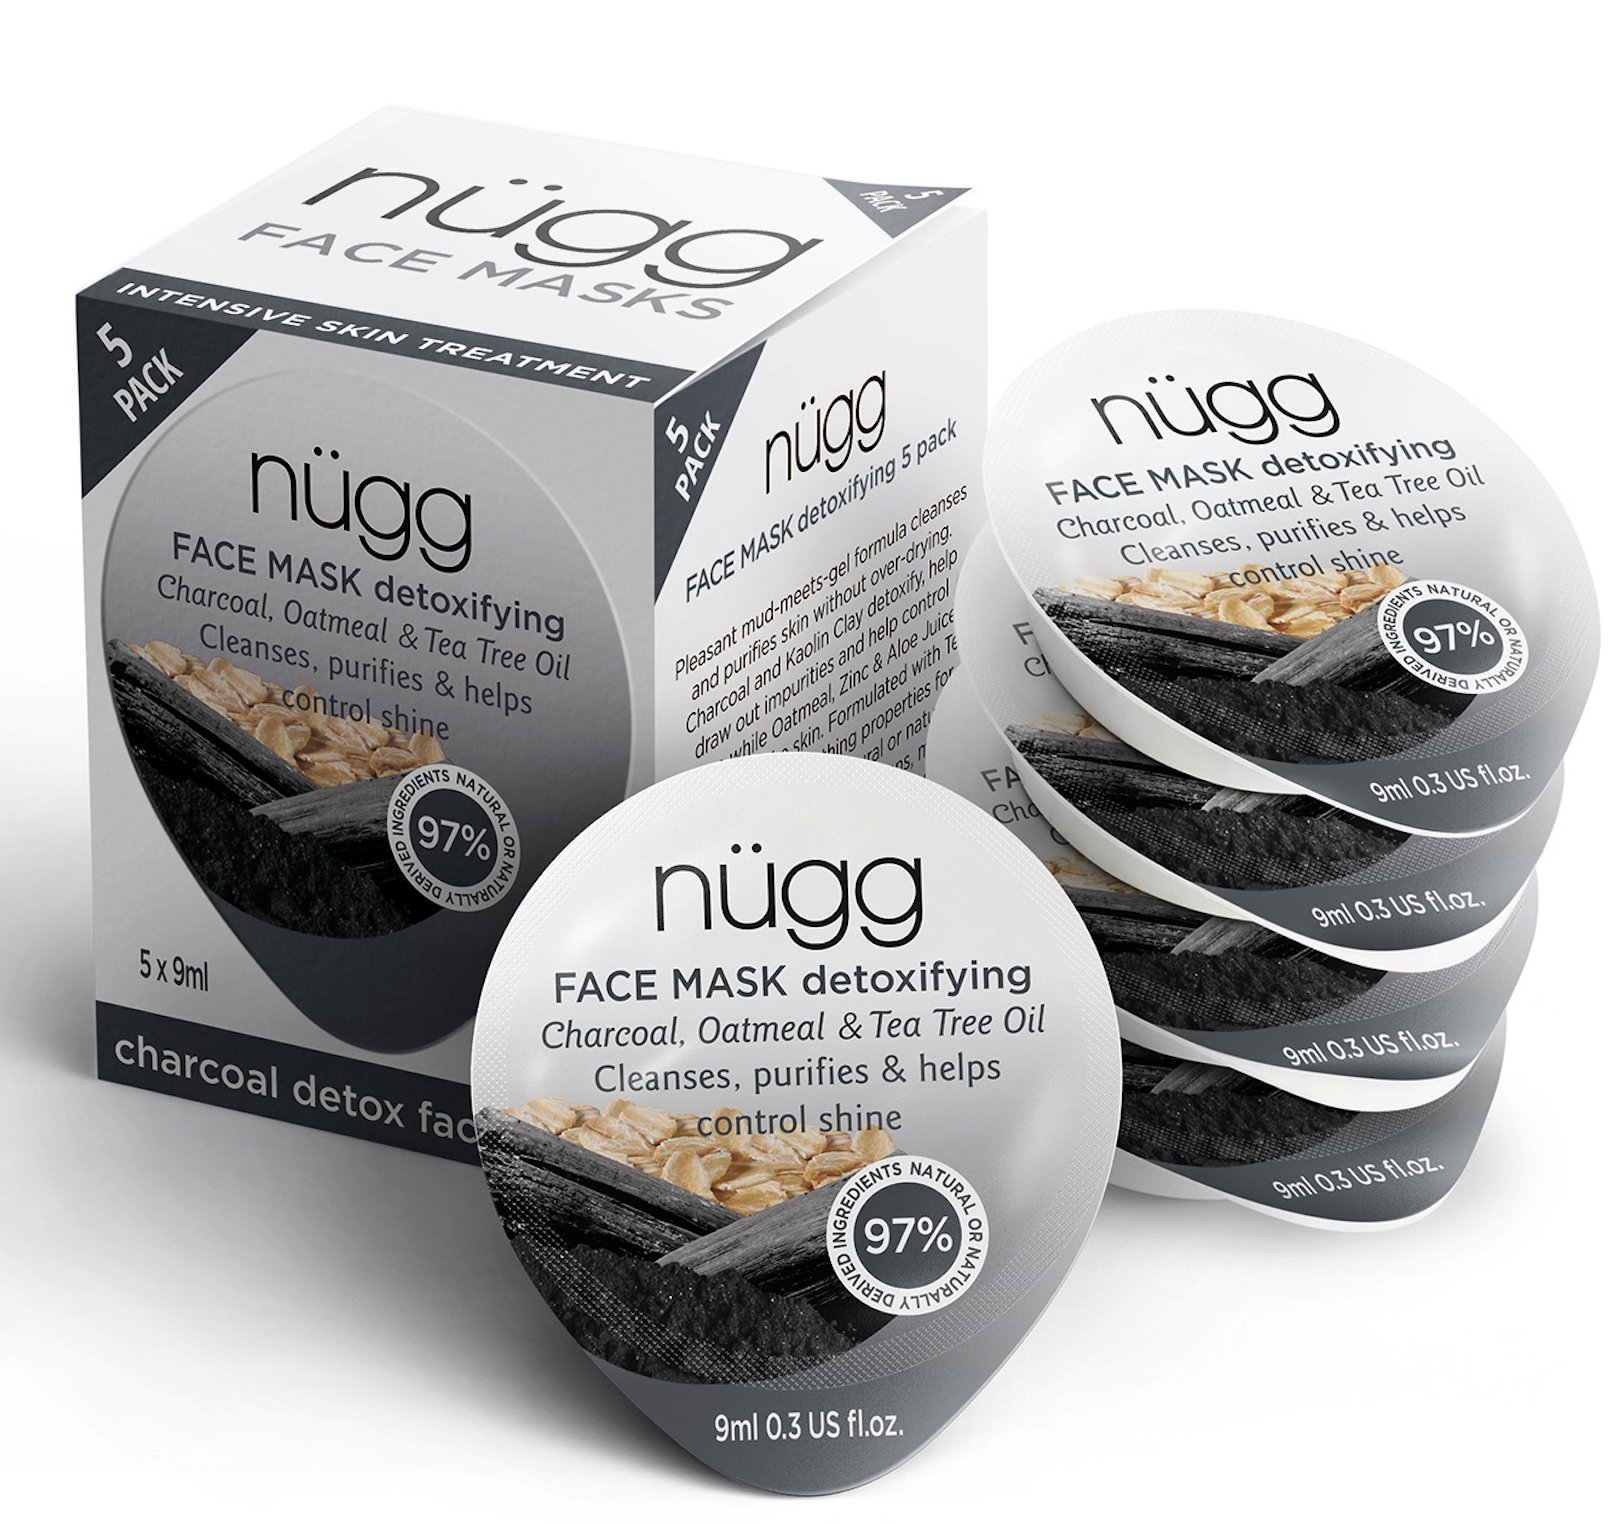 nügg Black Charcoal Face Mask; Cleanses Pores, Detoxes and helps Reduce Shine; for Normal, Oily, Combination and Acne-Prone Skin; Non-Drying Gel Formula; 5 Pack